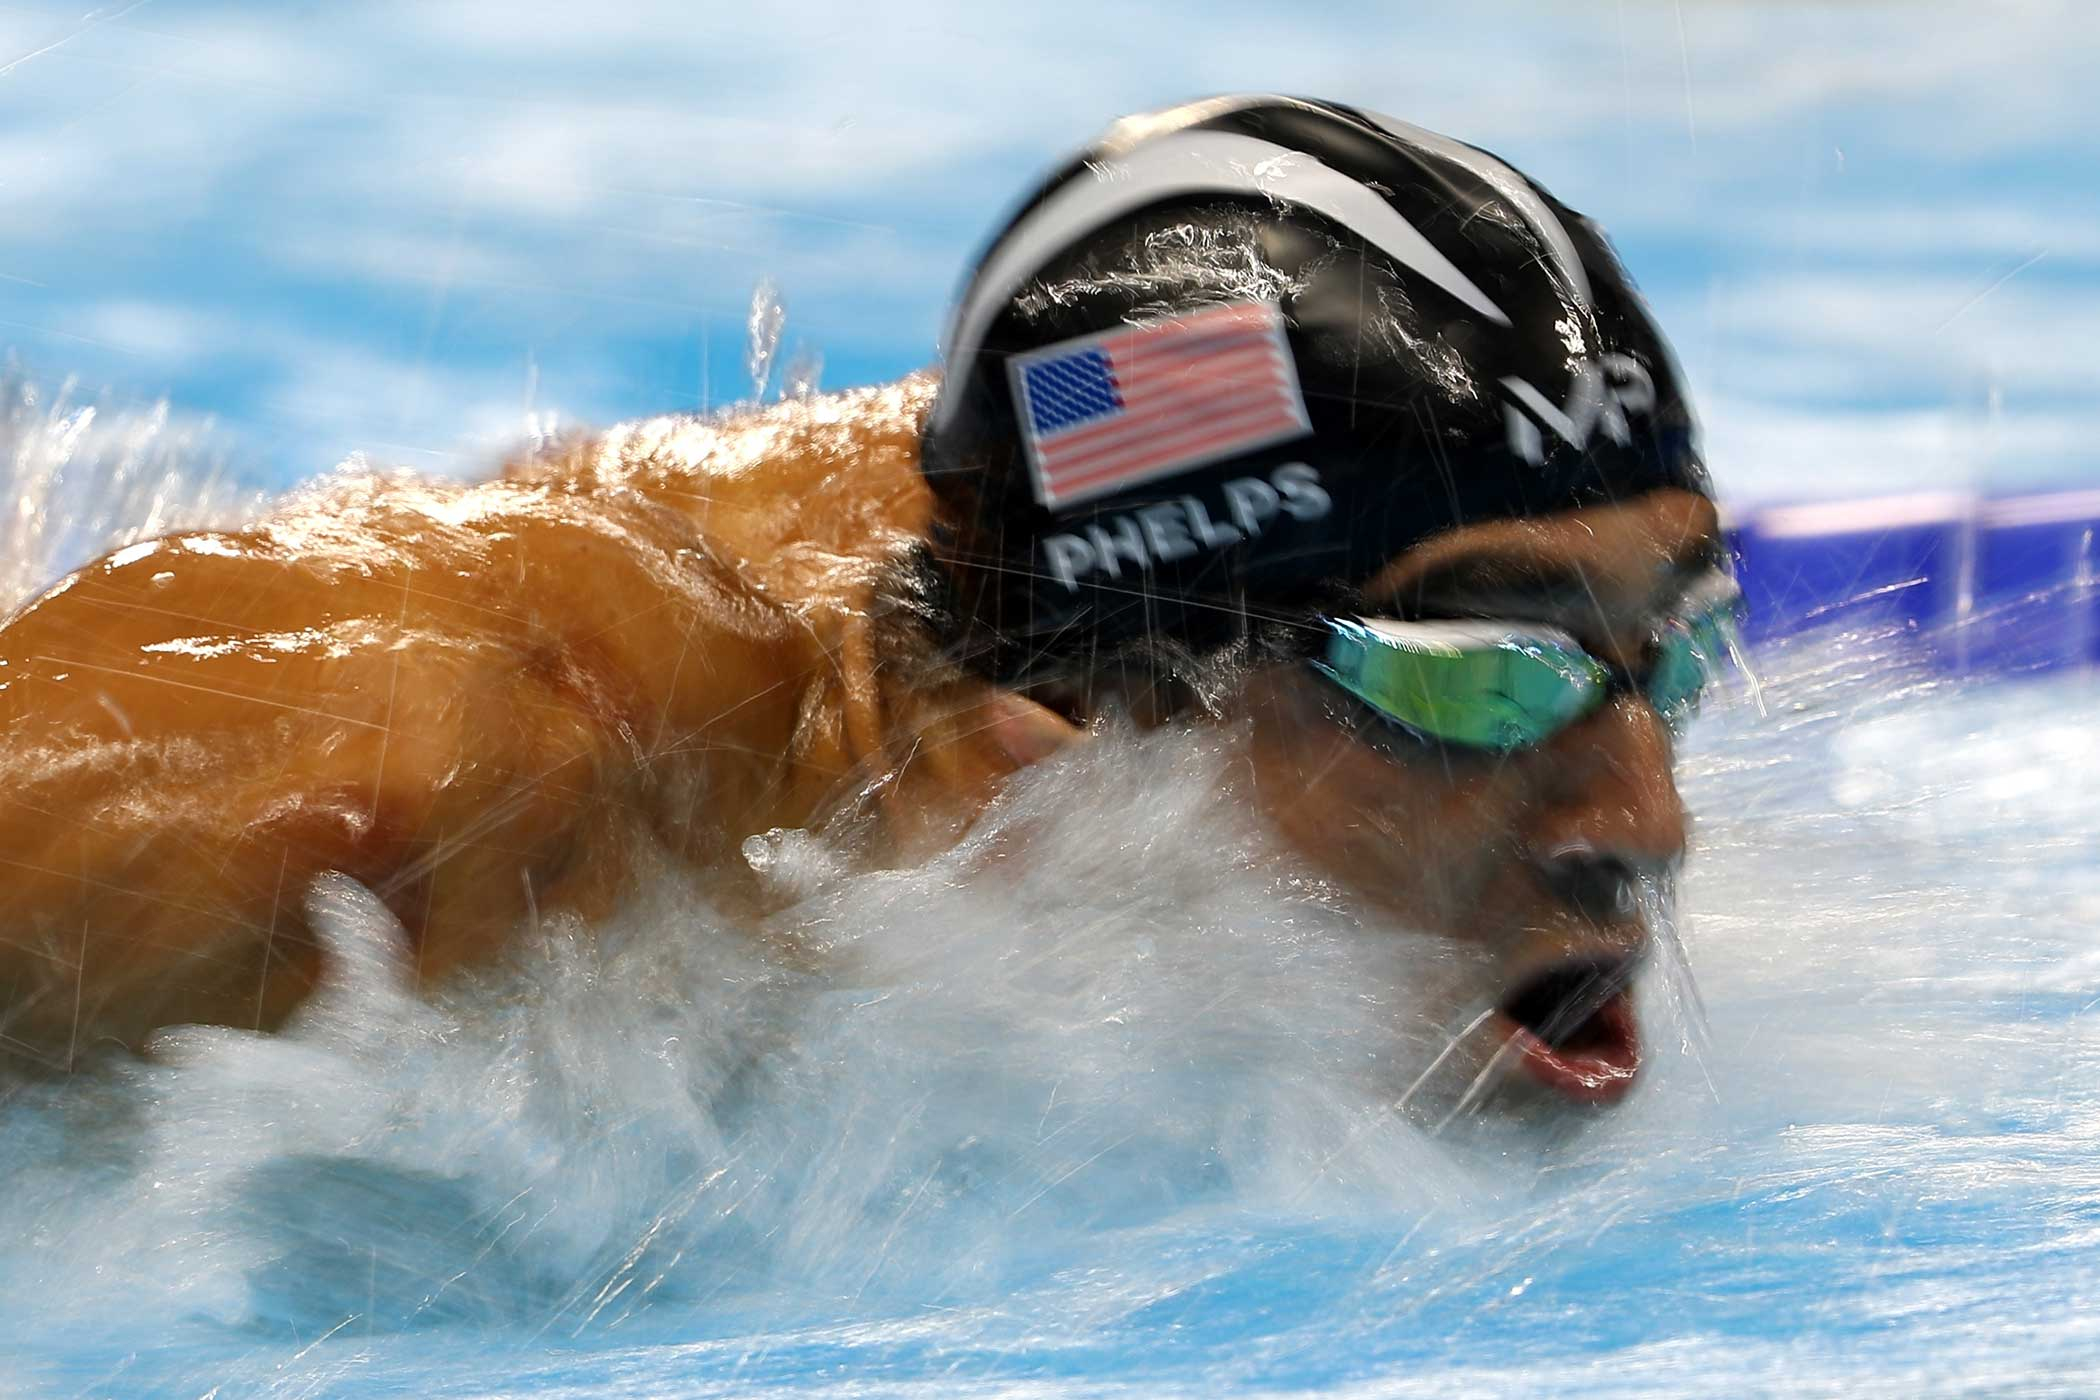 Michael Phelps of the United States competes in the Men's 100m Butterfly Final on August 12.